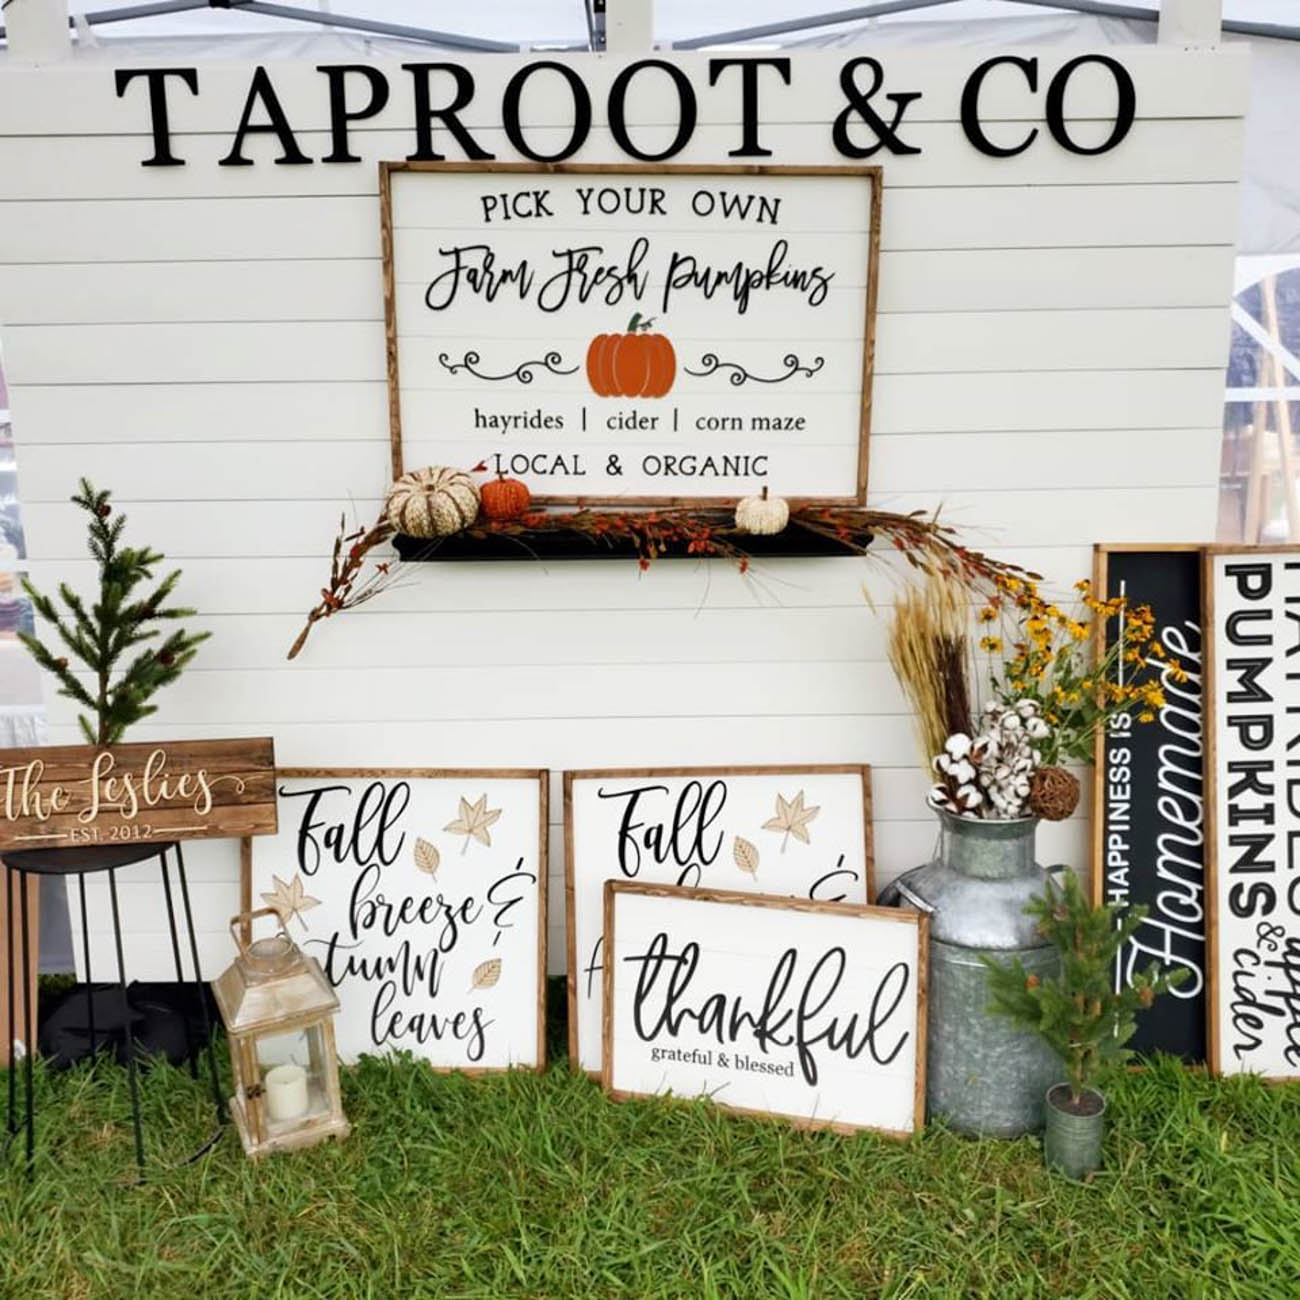 Jessica & Paul Marsh are the married duo behind Taproot & Co. The Hebron family business makes handcrafted wooden signs and free-standing cutouts, most of which are customized. Jessica is the designer of the pair and Paul handles the woodworking, framing, and painting of the operation. / Image courtesy of Taproot & Co. // Published: 2.5.20